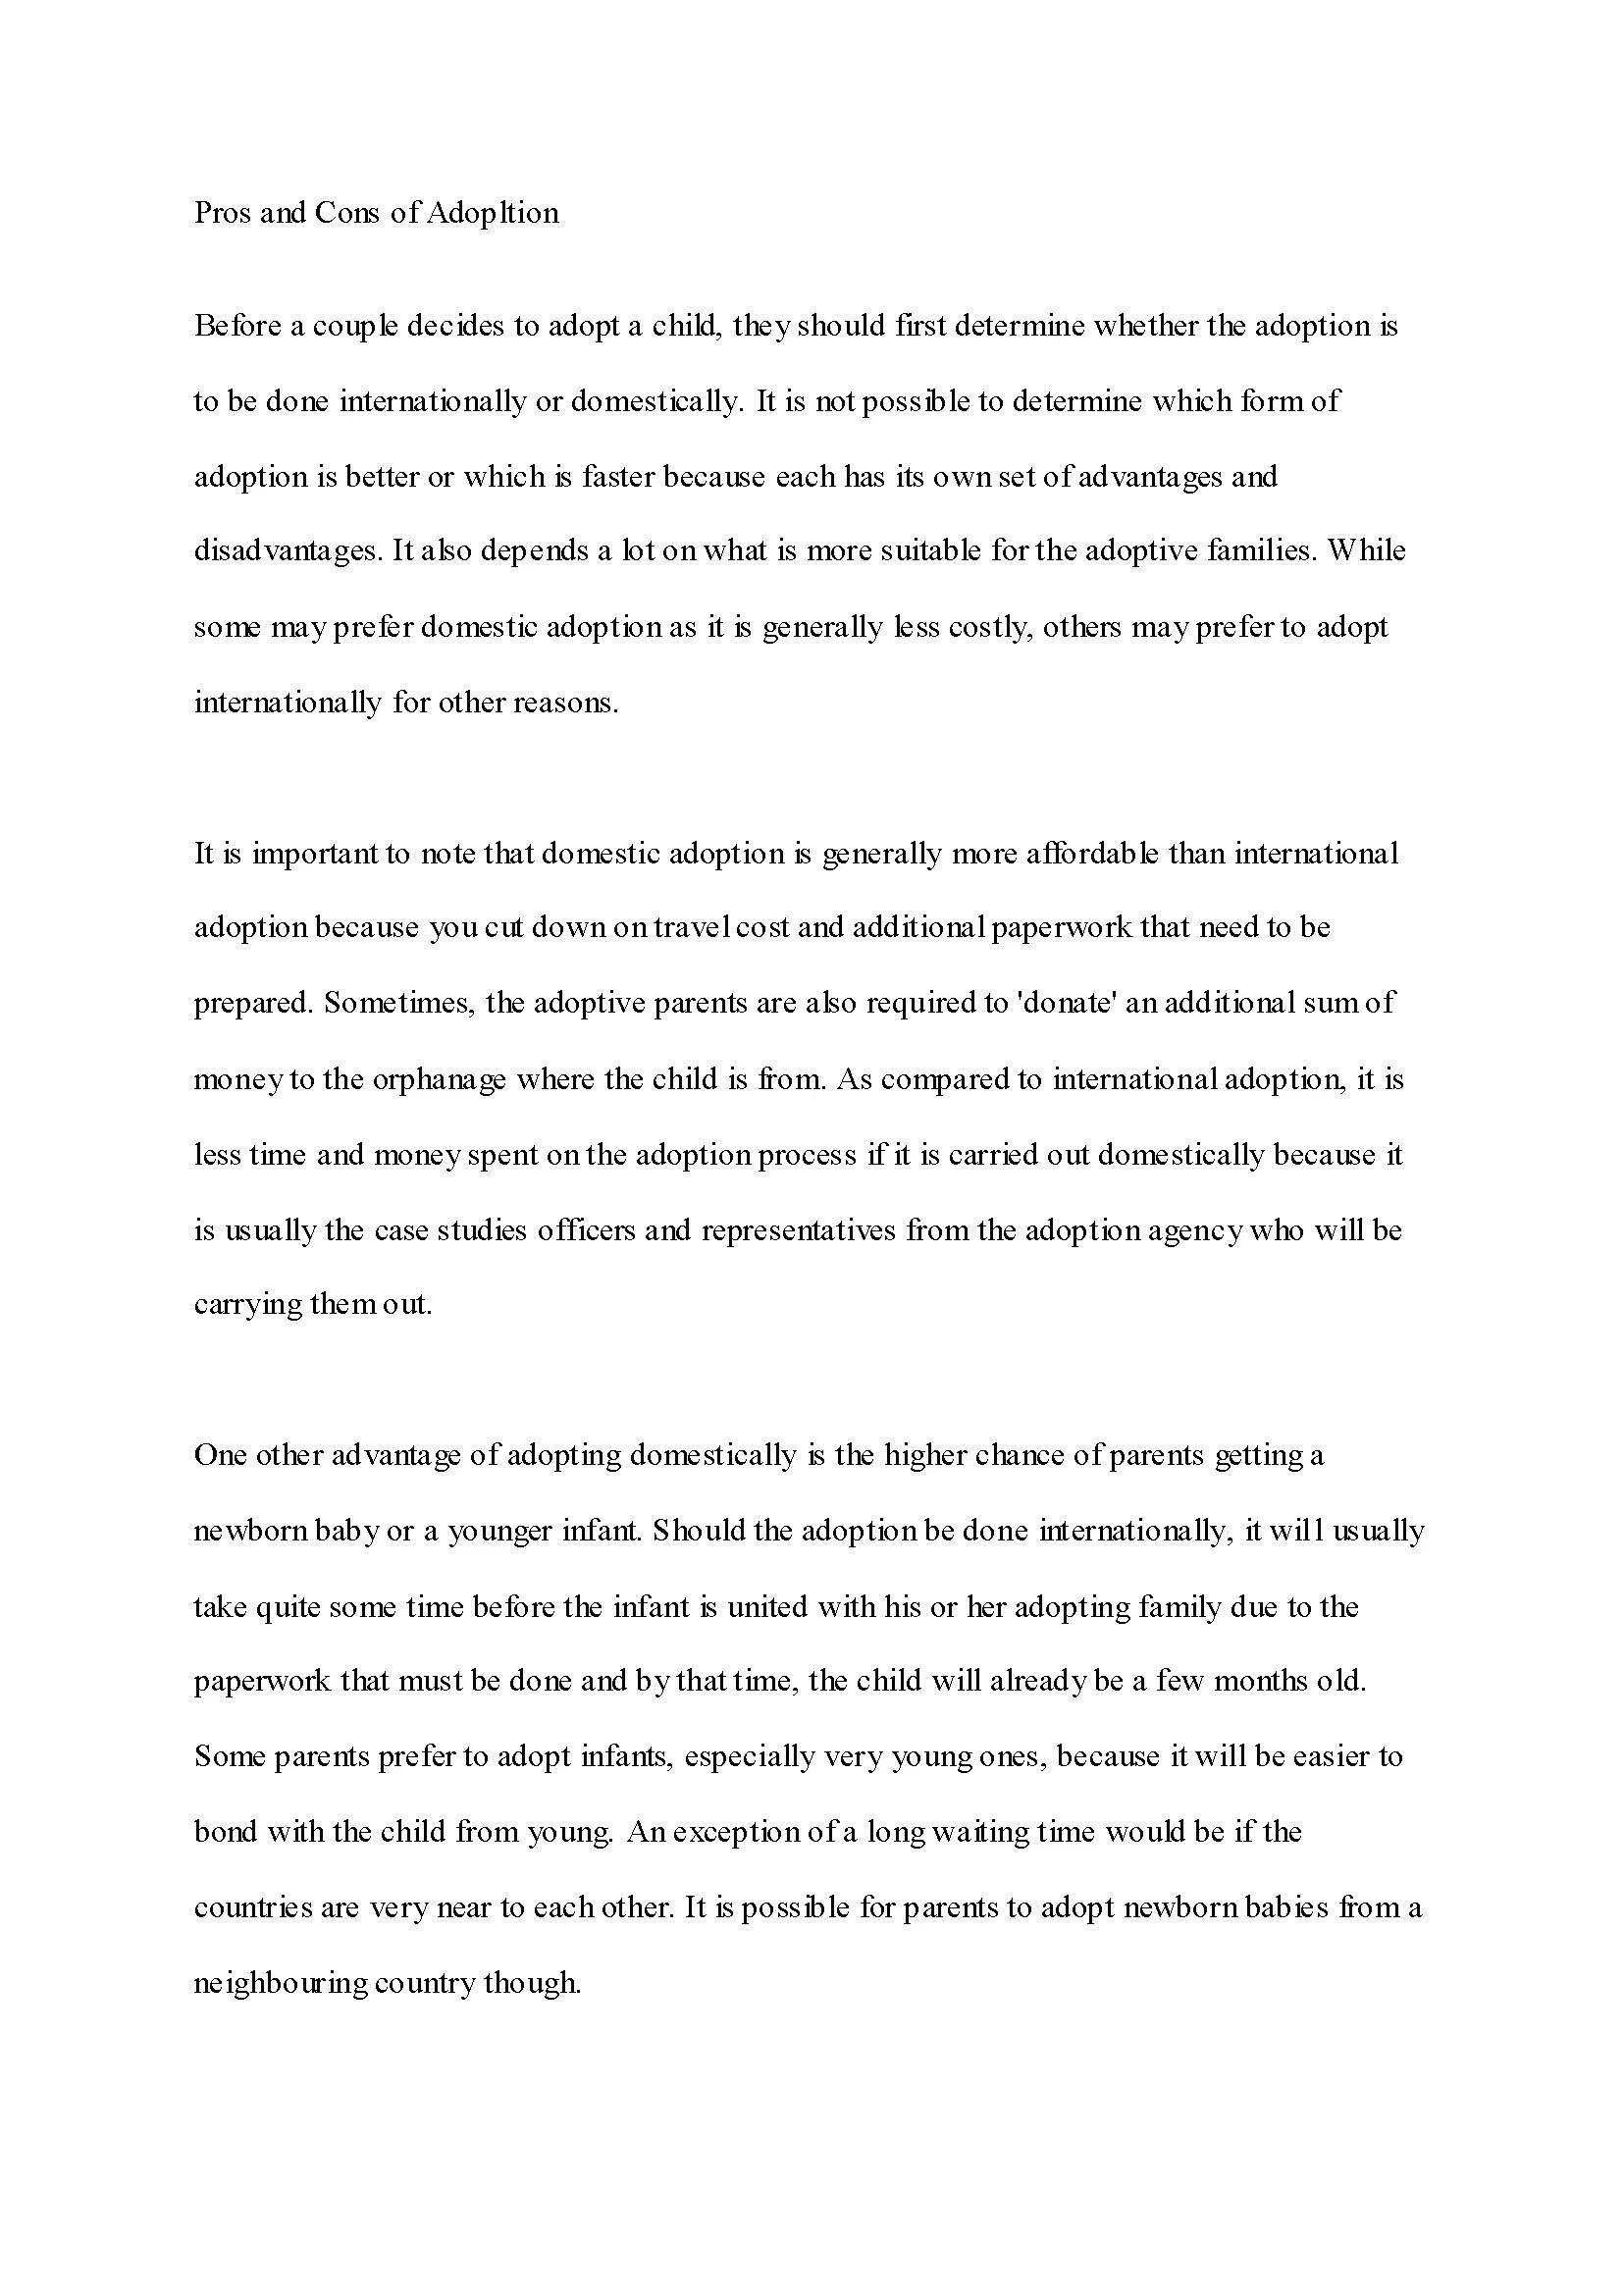 004 Amazing Compare And Contrast Essay Example College High Def  For Topic Free ComparisonFull